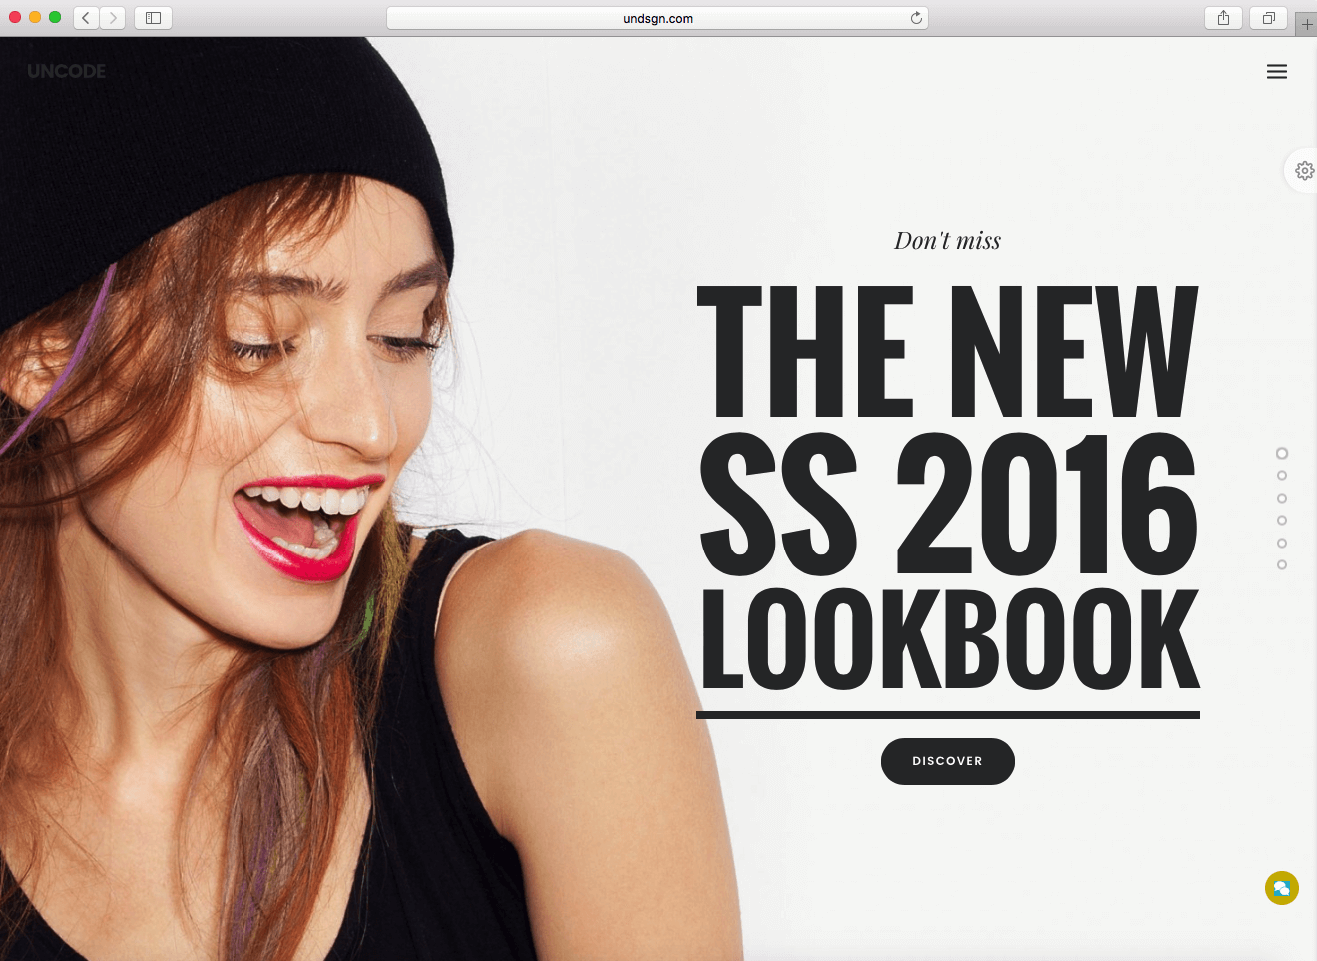 using WordPress eCommerce theme of 2016 to sell fashion products